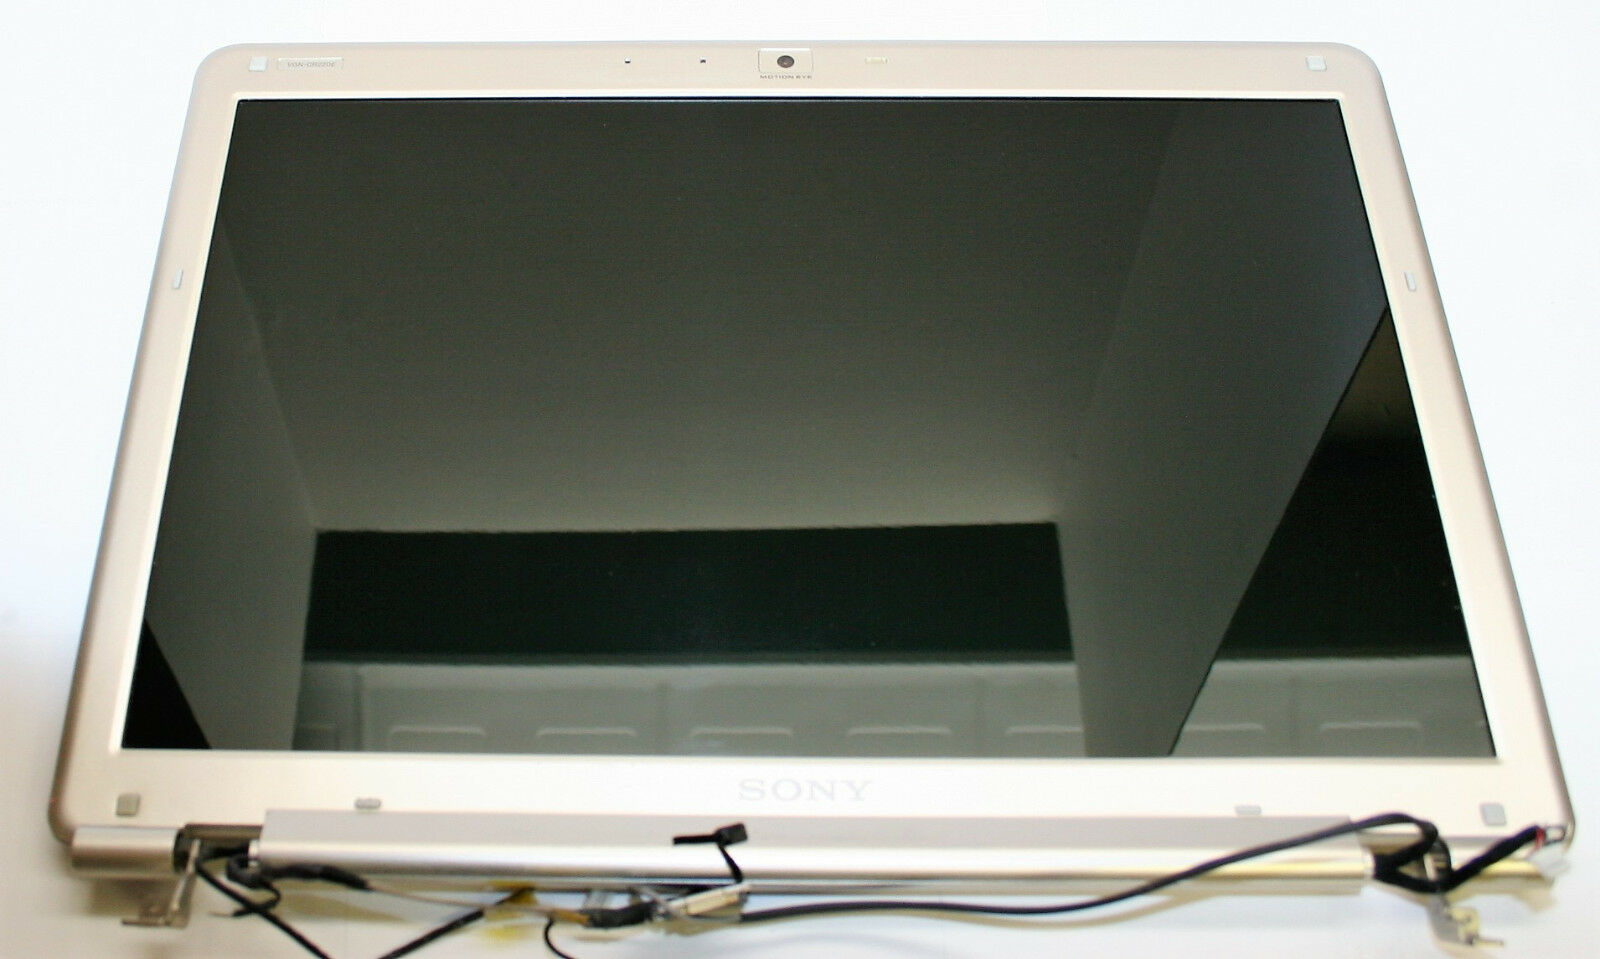 Sony Vaio VGN-CR220E LCD Assembly ~ Complete with Hinge Screws included!